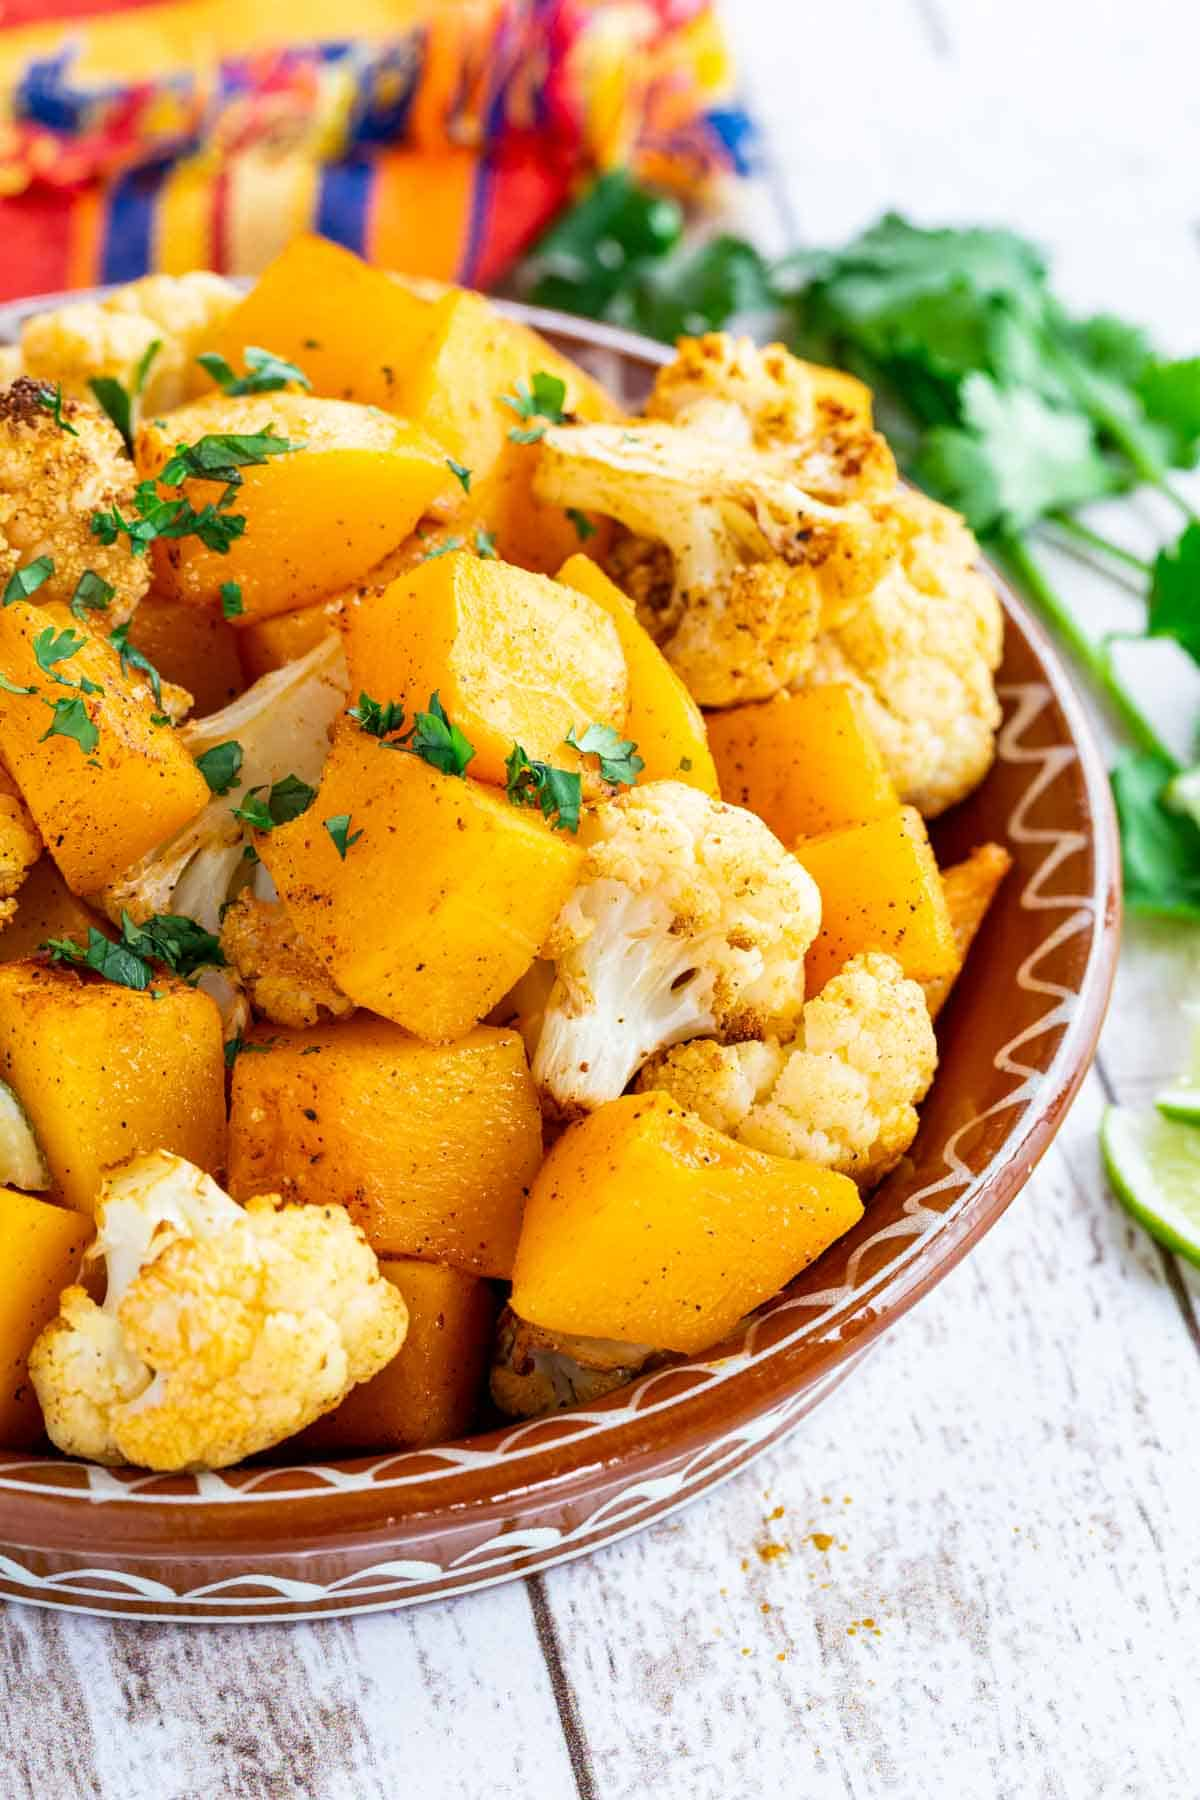 a dish of roasted cauliflower and butternut squash on a colorful striped napkin next to a sprig of cilantro